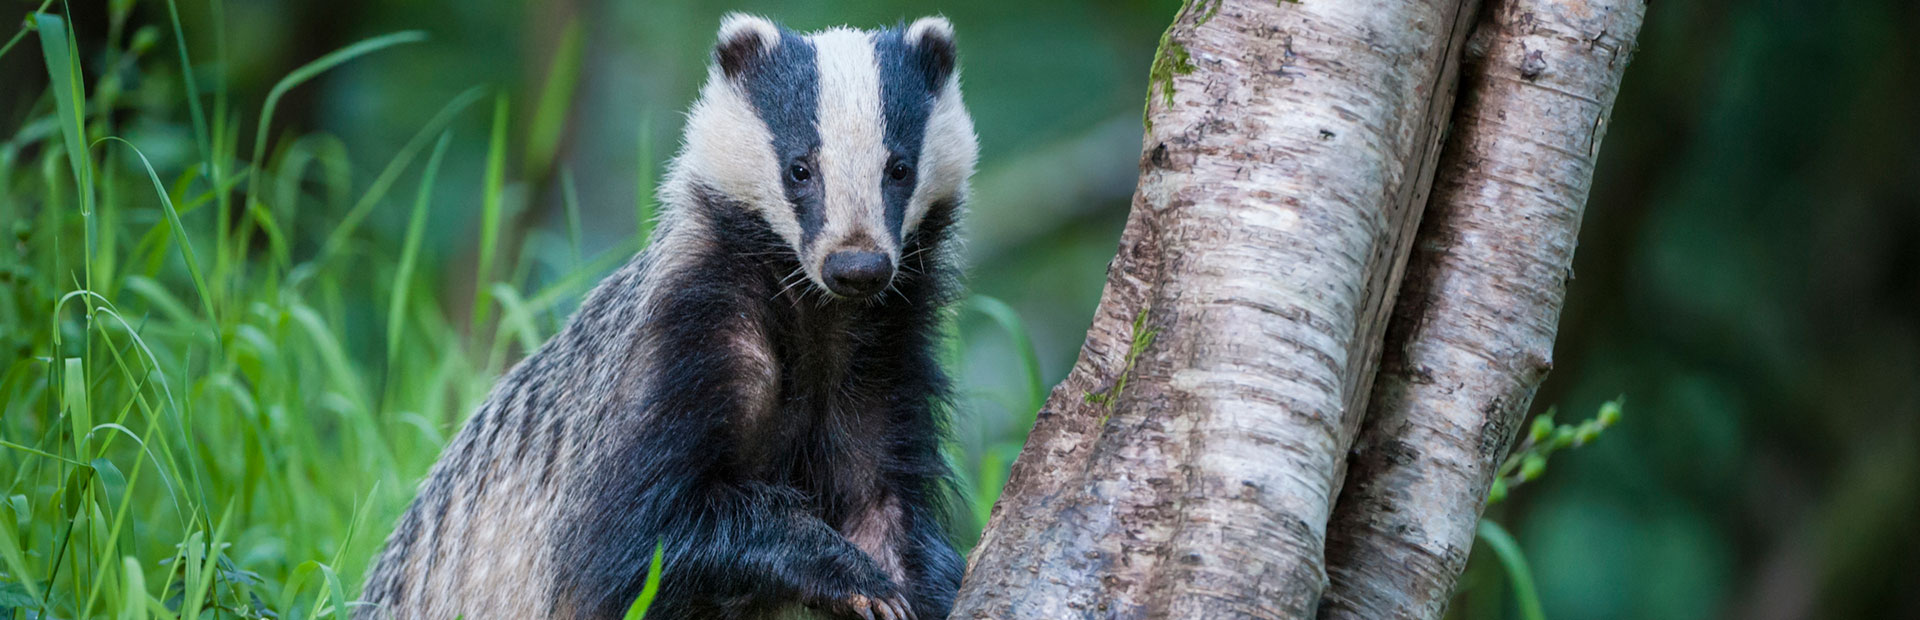 see-badgers-in-devon